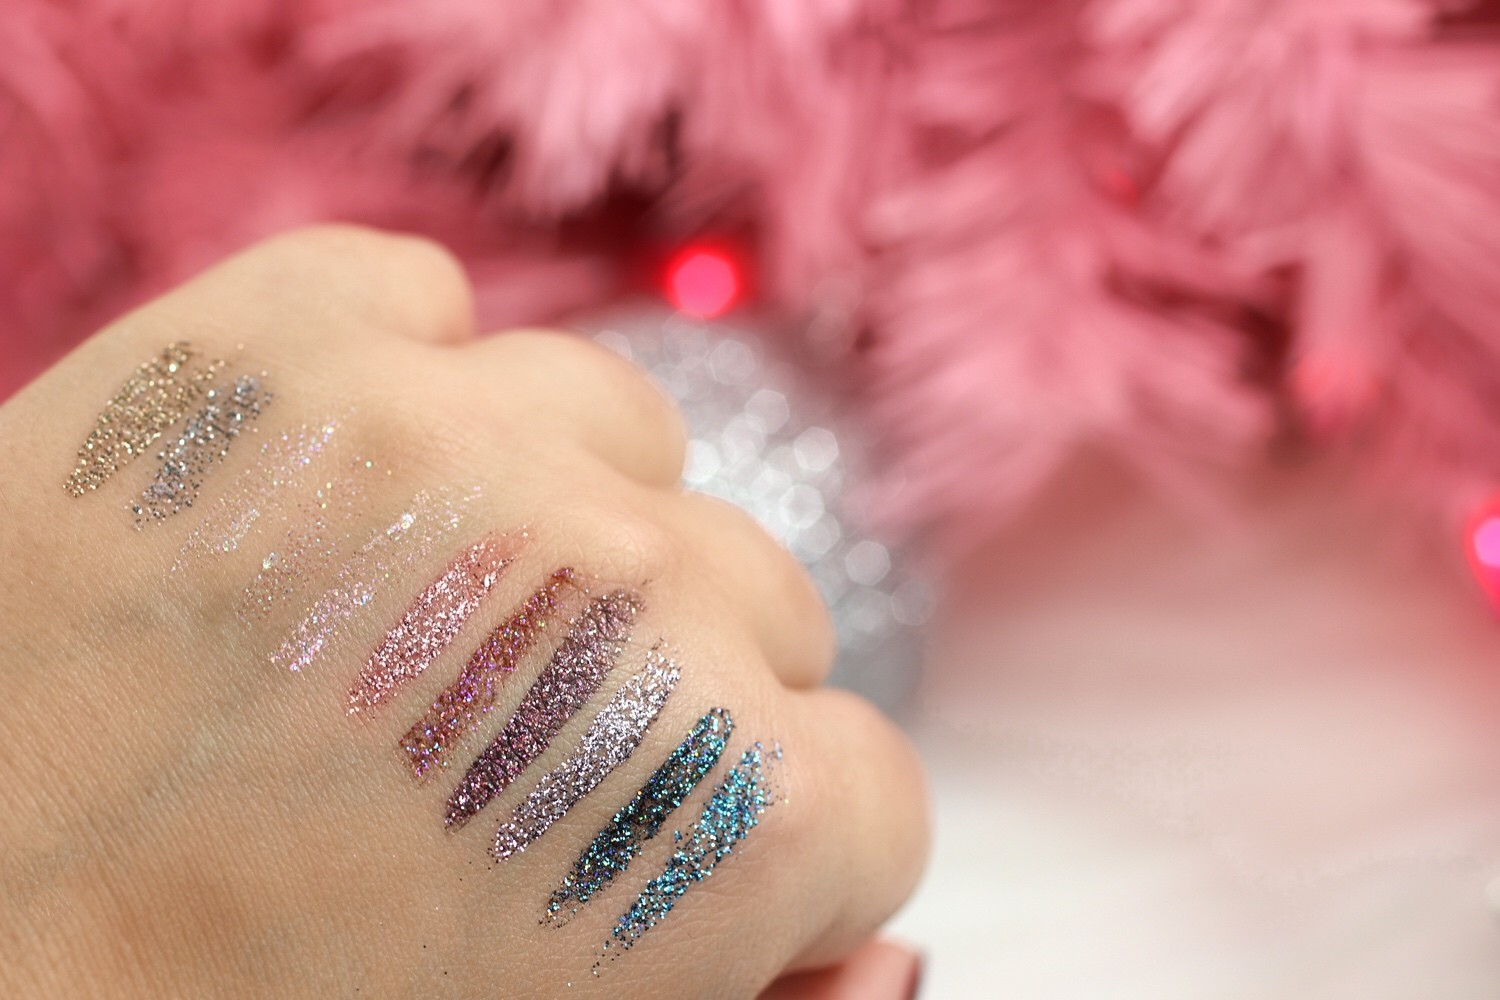 Urban Decay Heavy Metal Glitter Eyeliner Swatches